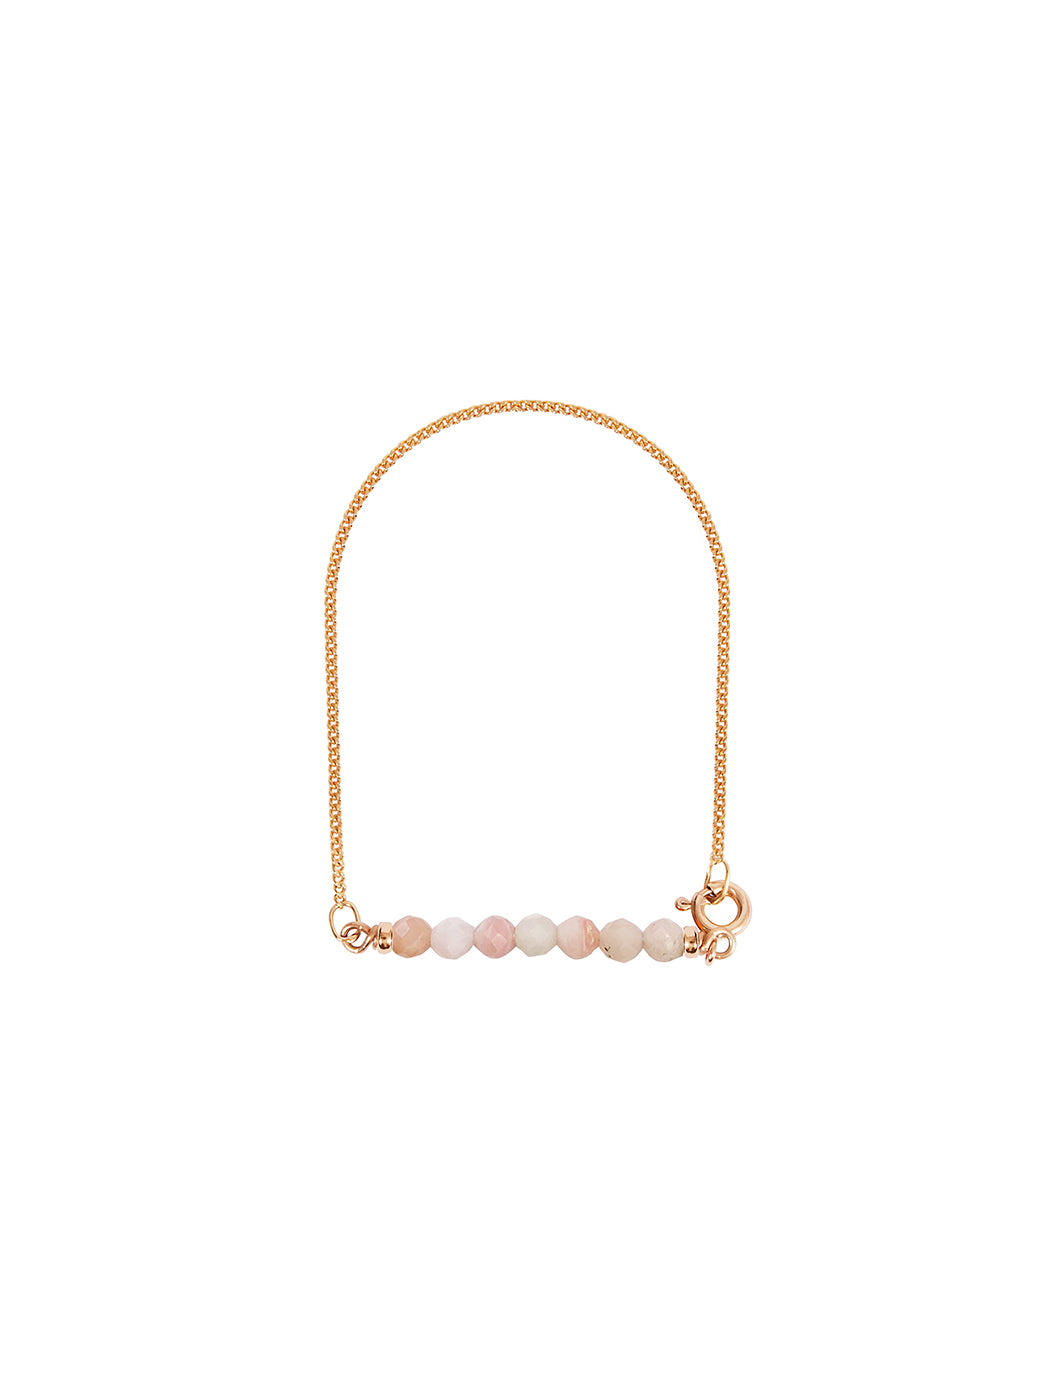 Fiorina Jewellery Gold Friendship Bracelet Pink Opal